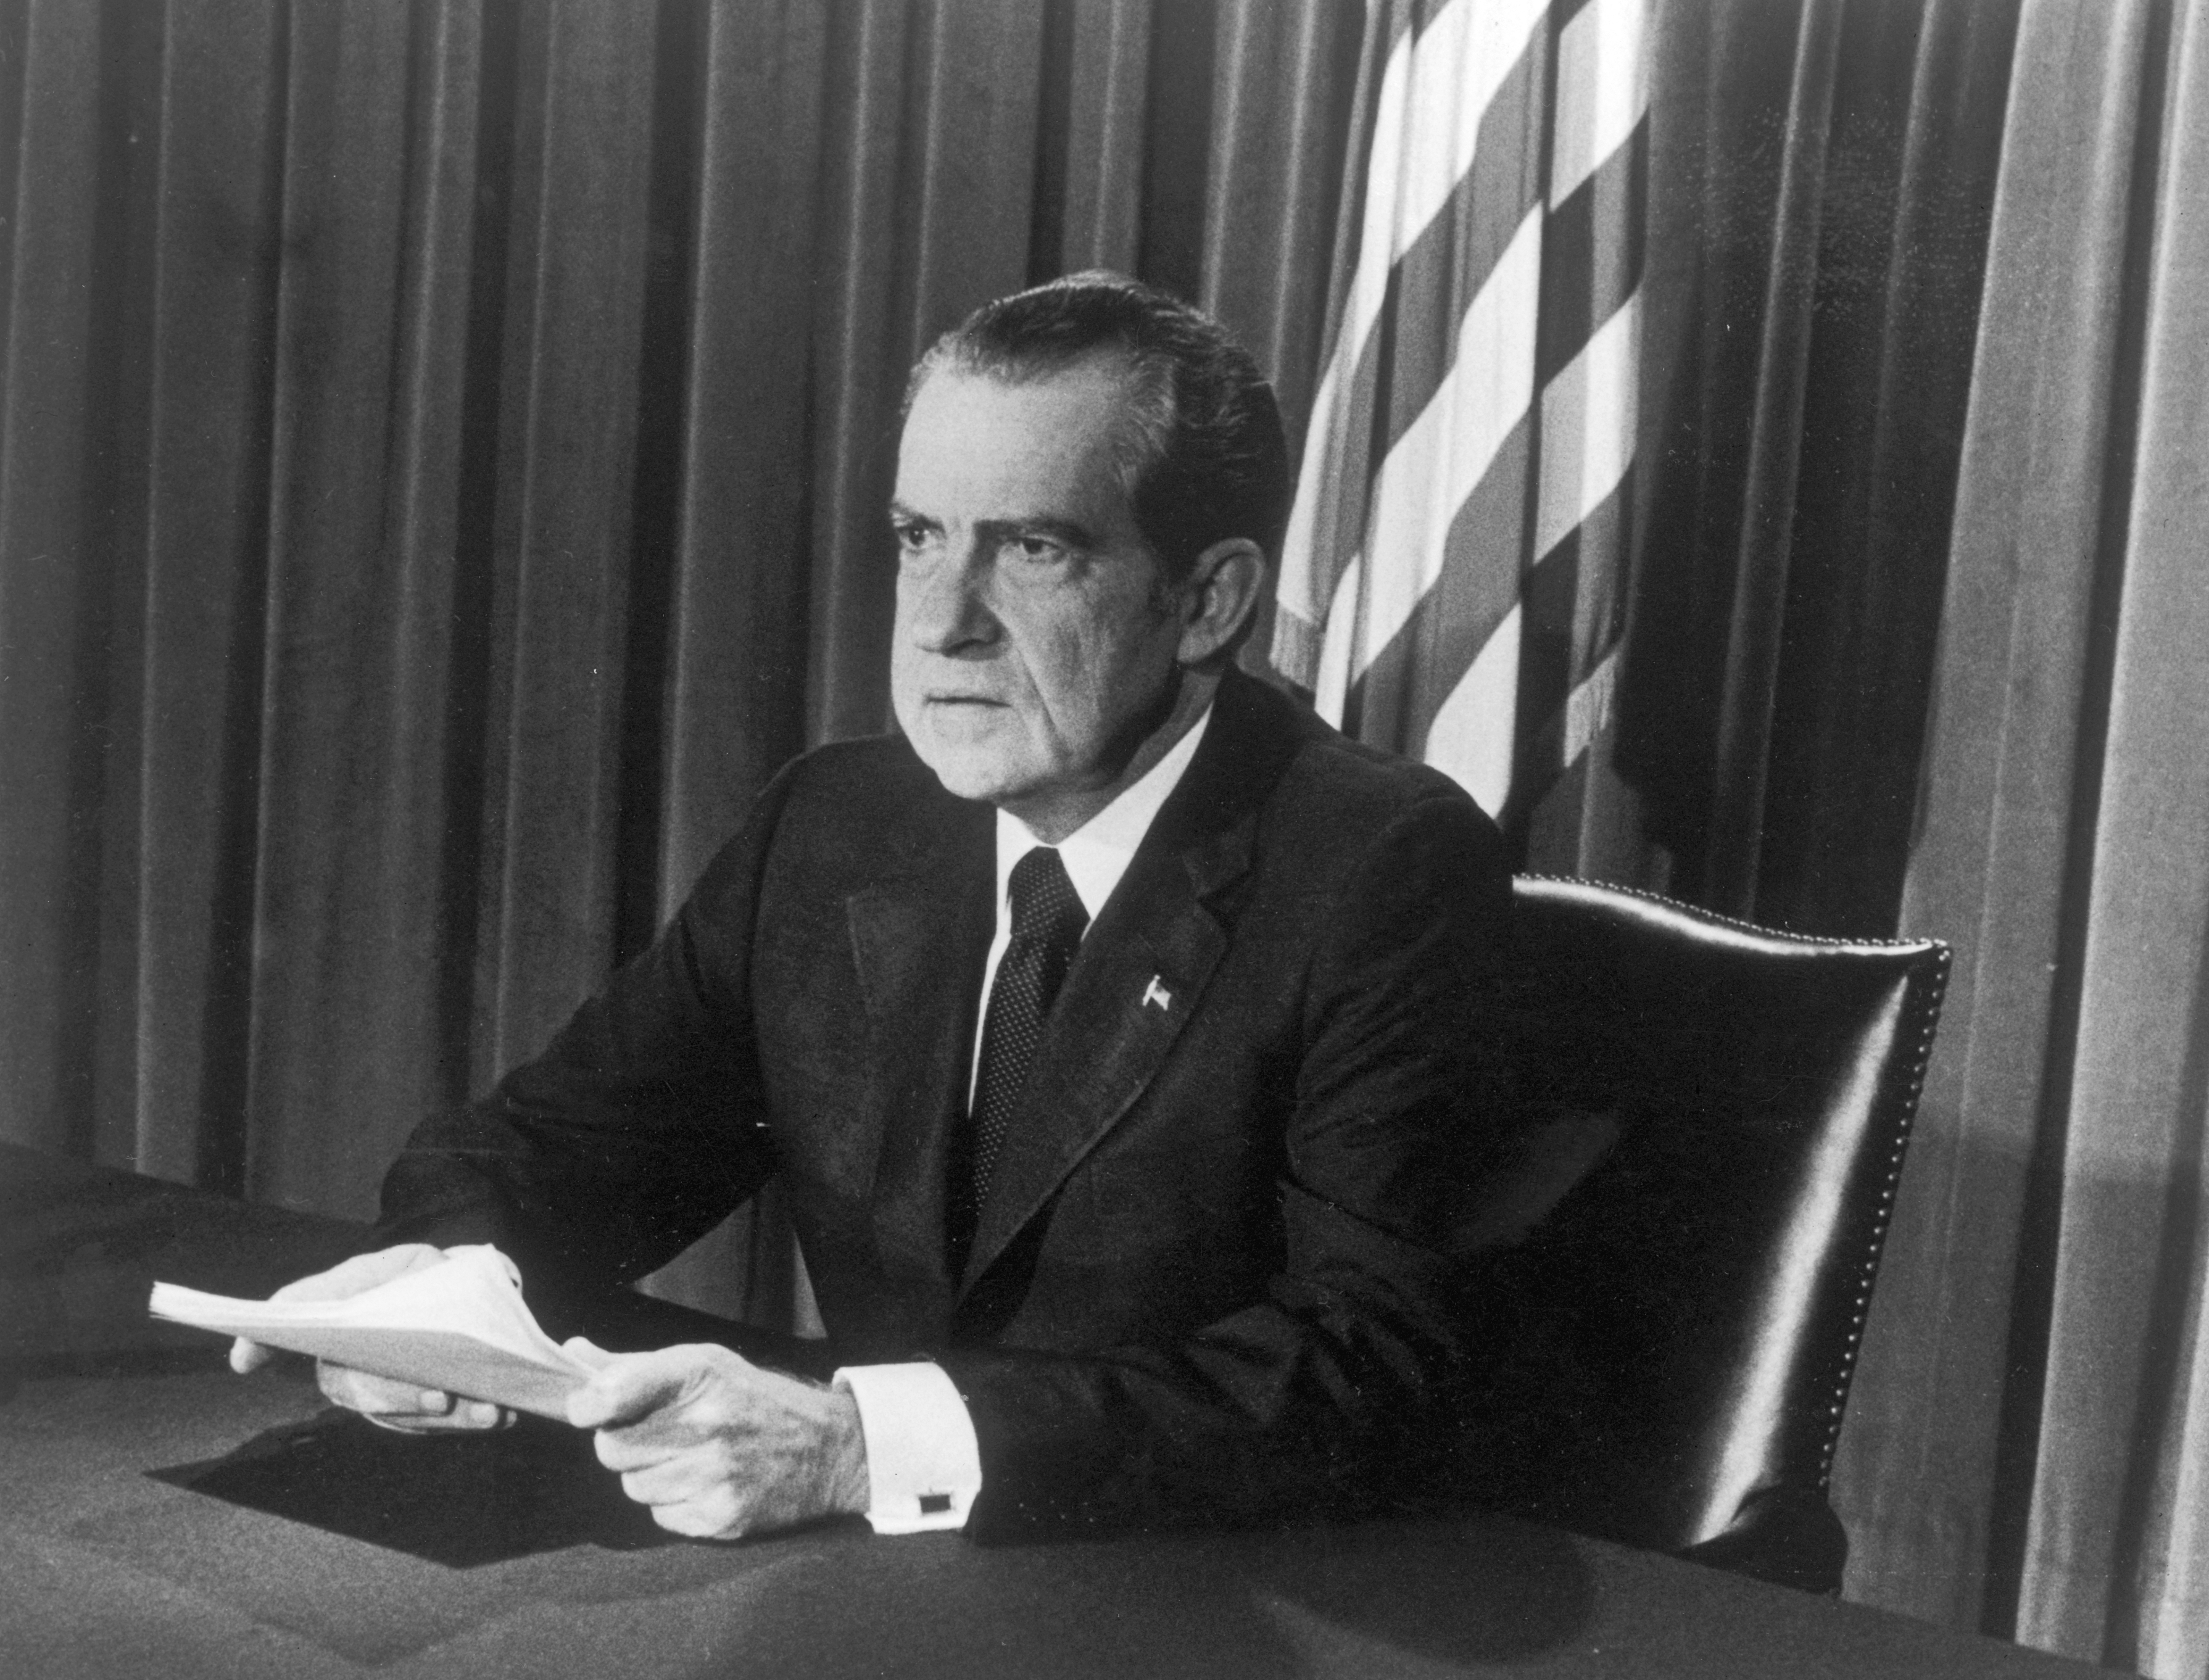 Research Paper: Thesis on Nixon?